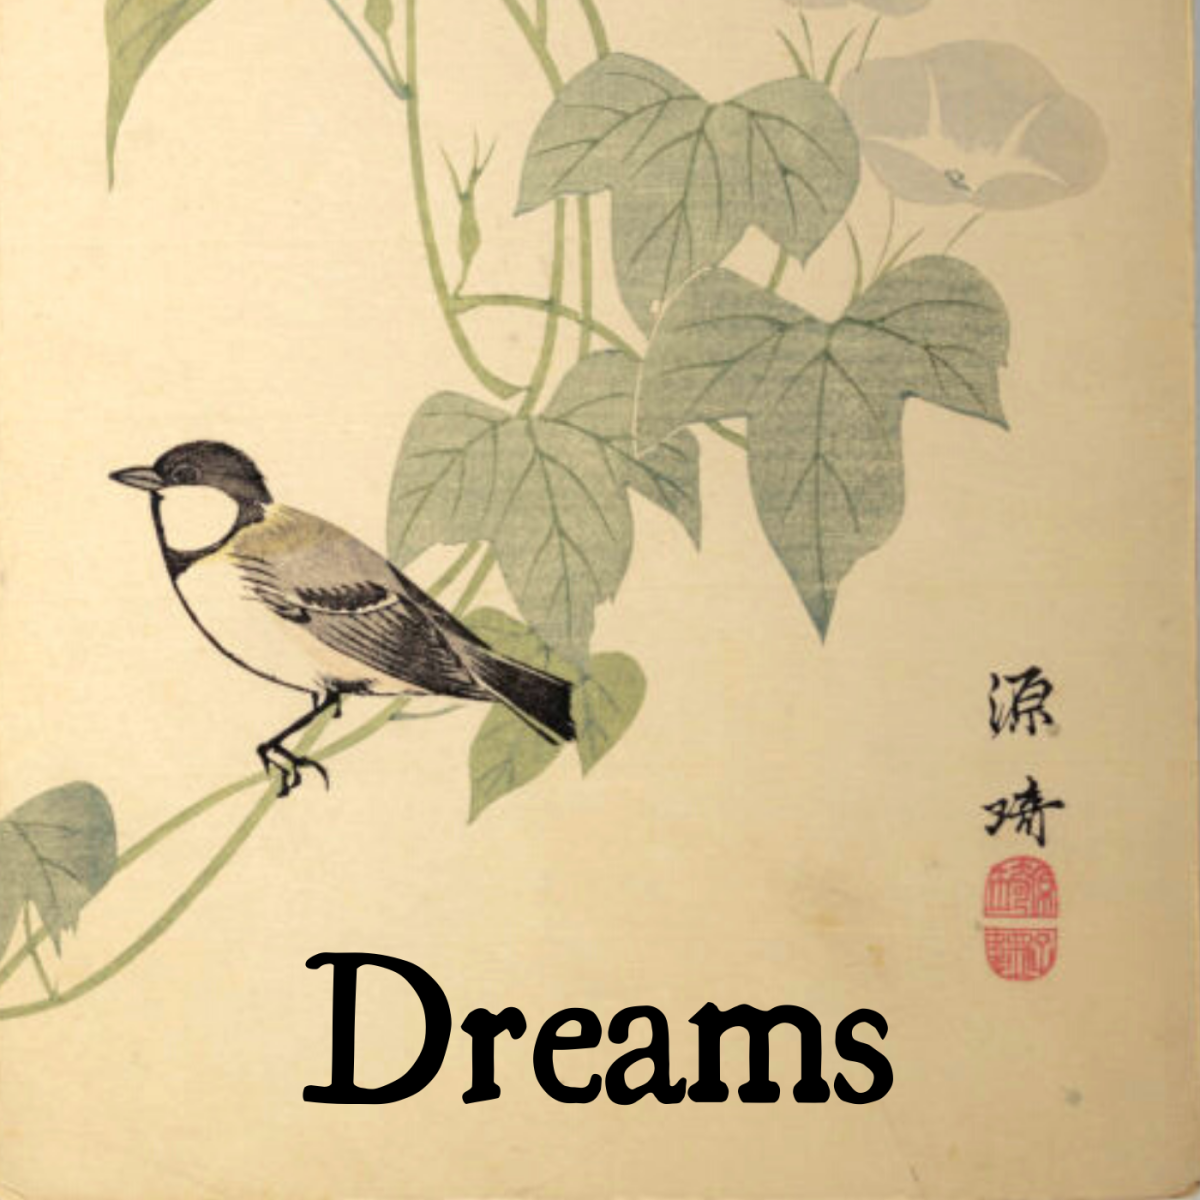 What do sparrows represent in dreams?